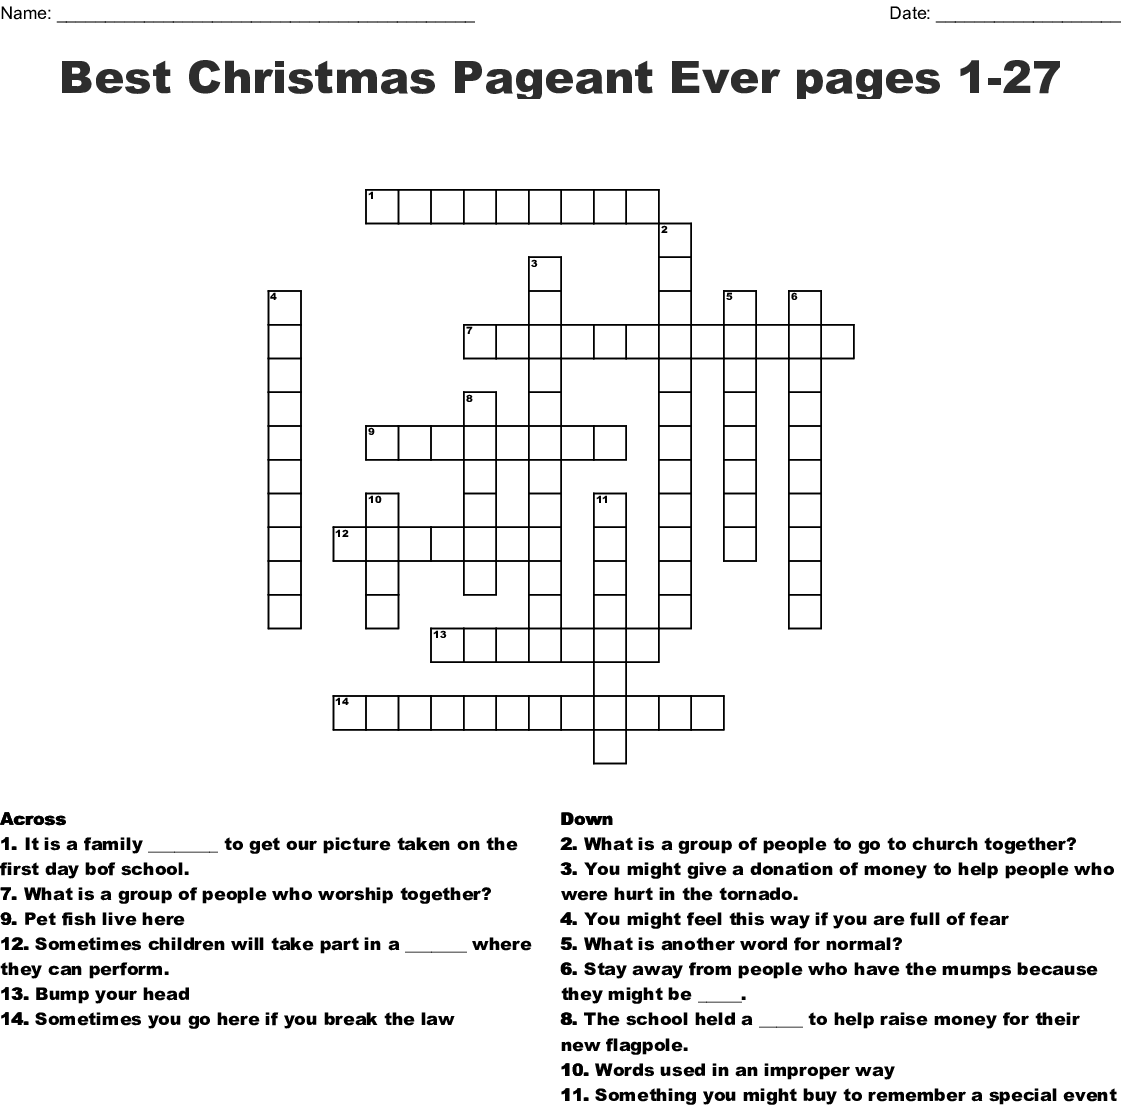 The Best Christmas Pageant Ever, Chapter 1 Crossword - Wordmint